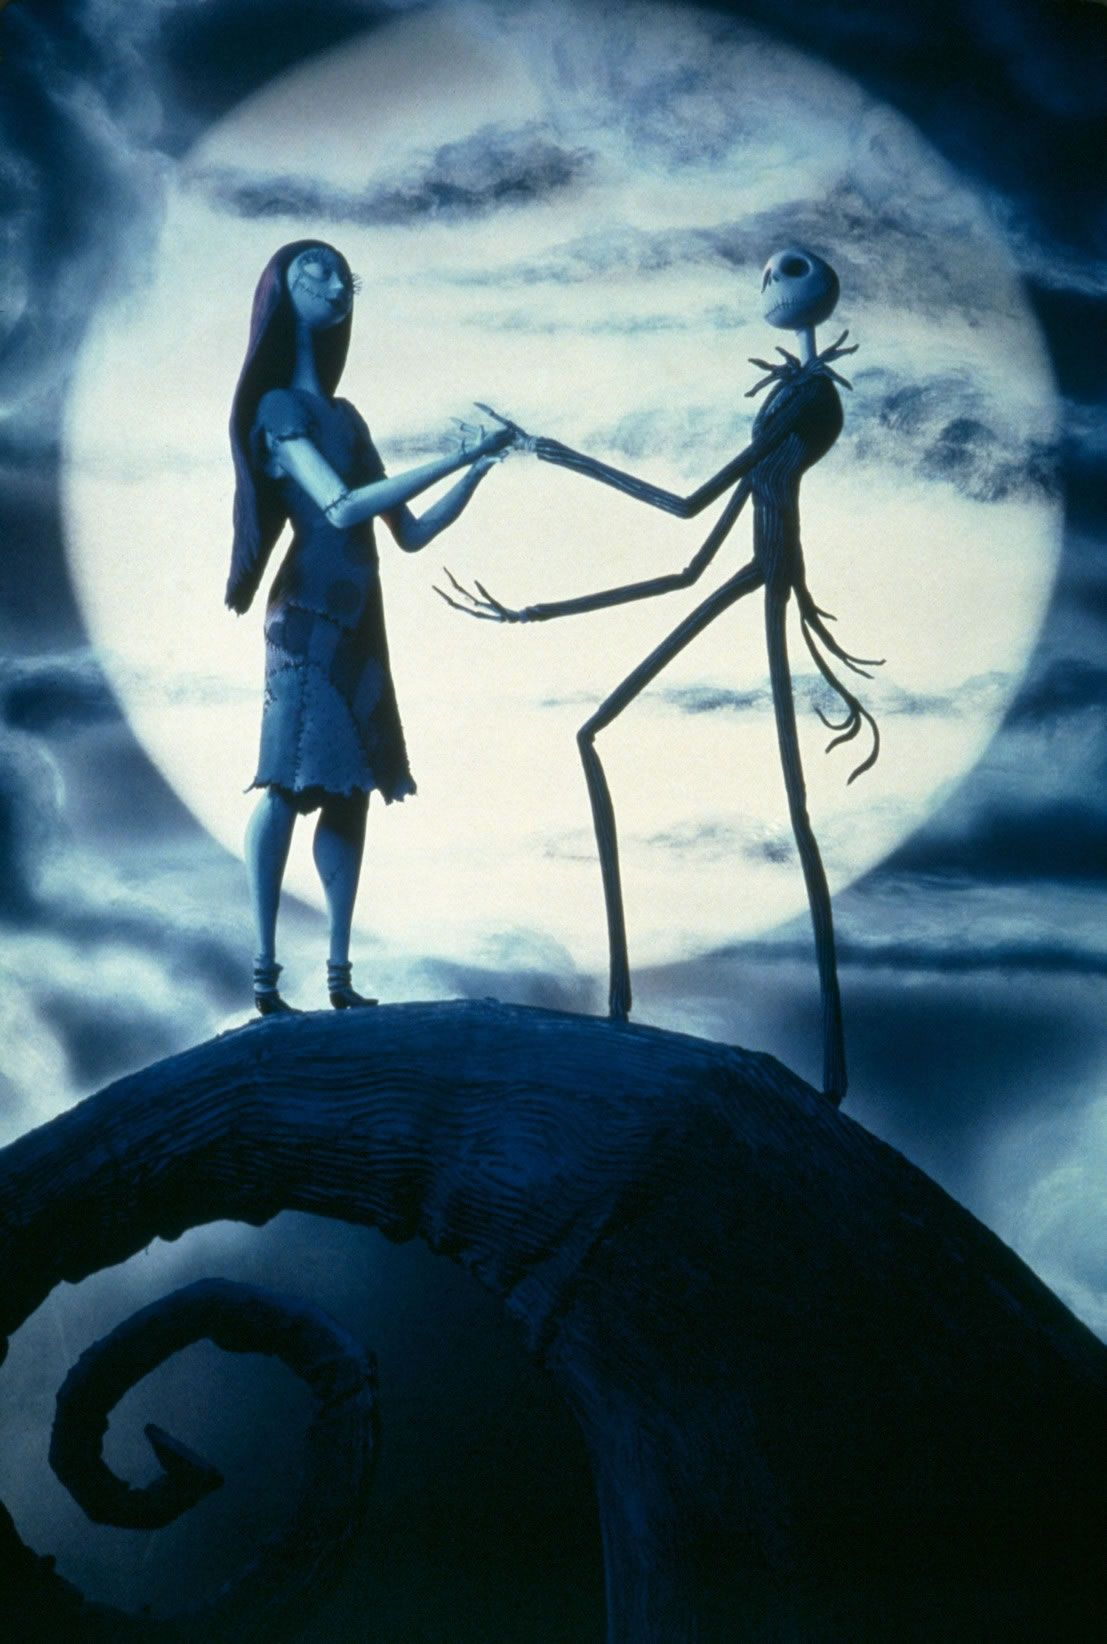 Jack and sally xxx, butterfly adult toy